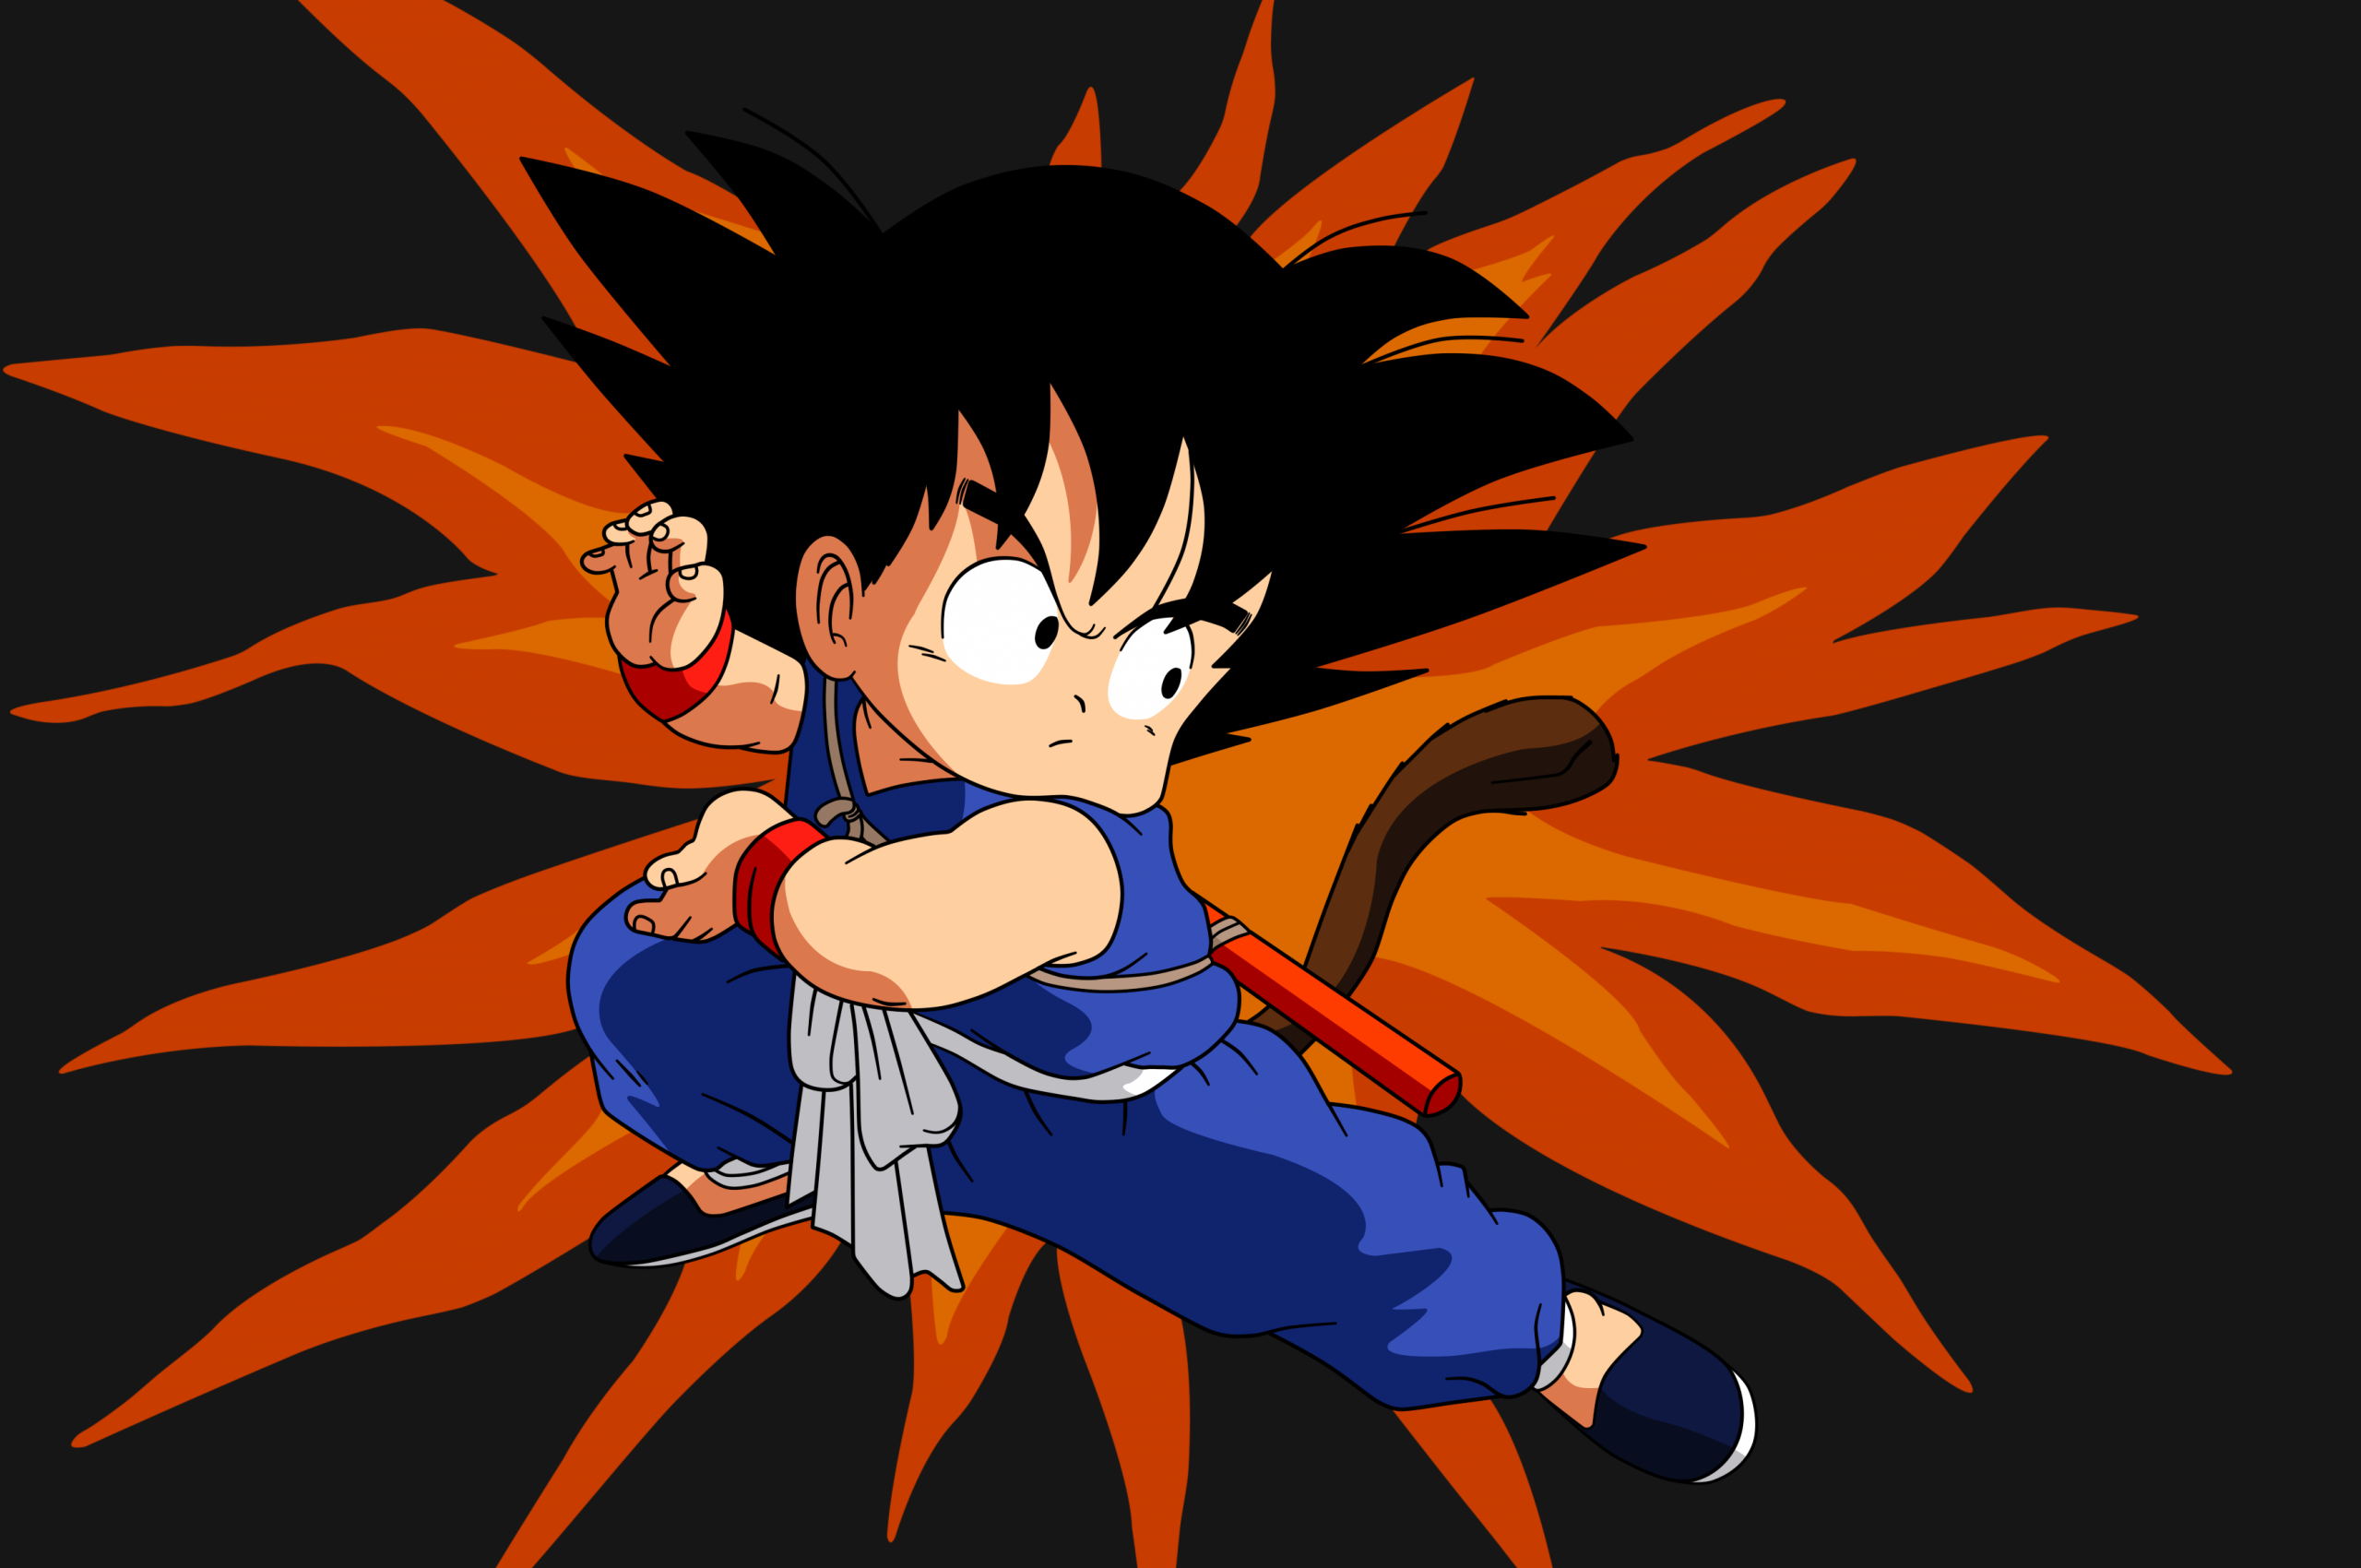 Free Download Dragon Ball Kid Goku 24 By Superjmanplay2 3500x2625